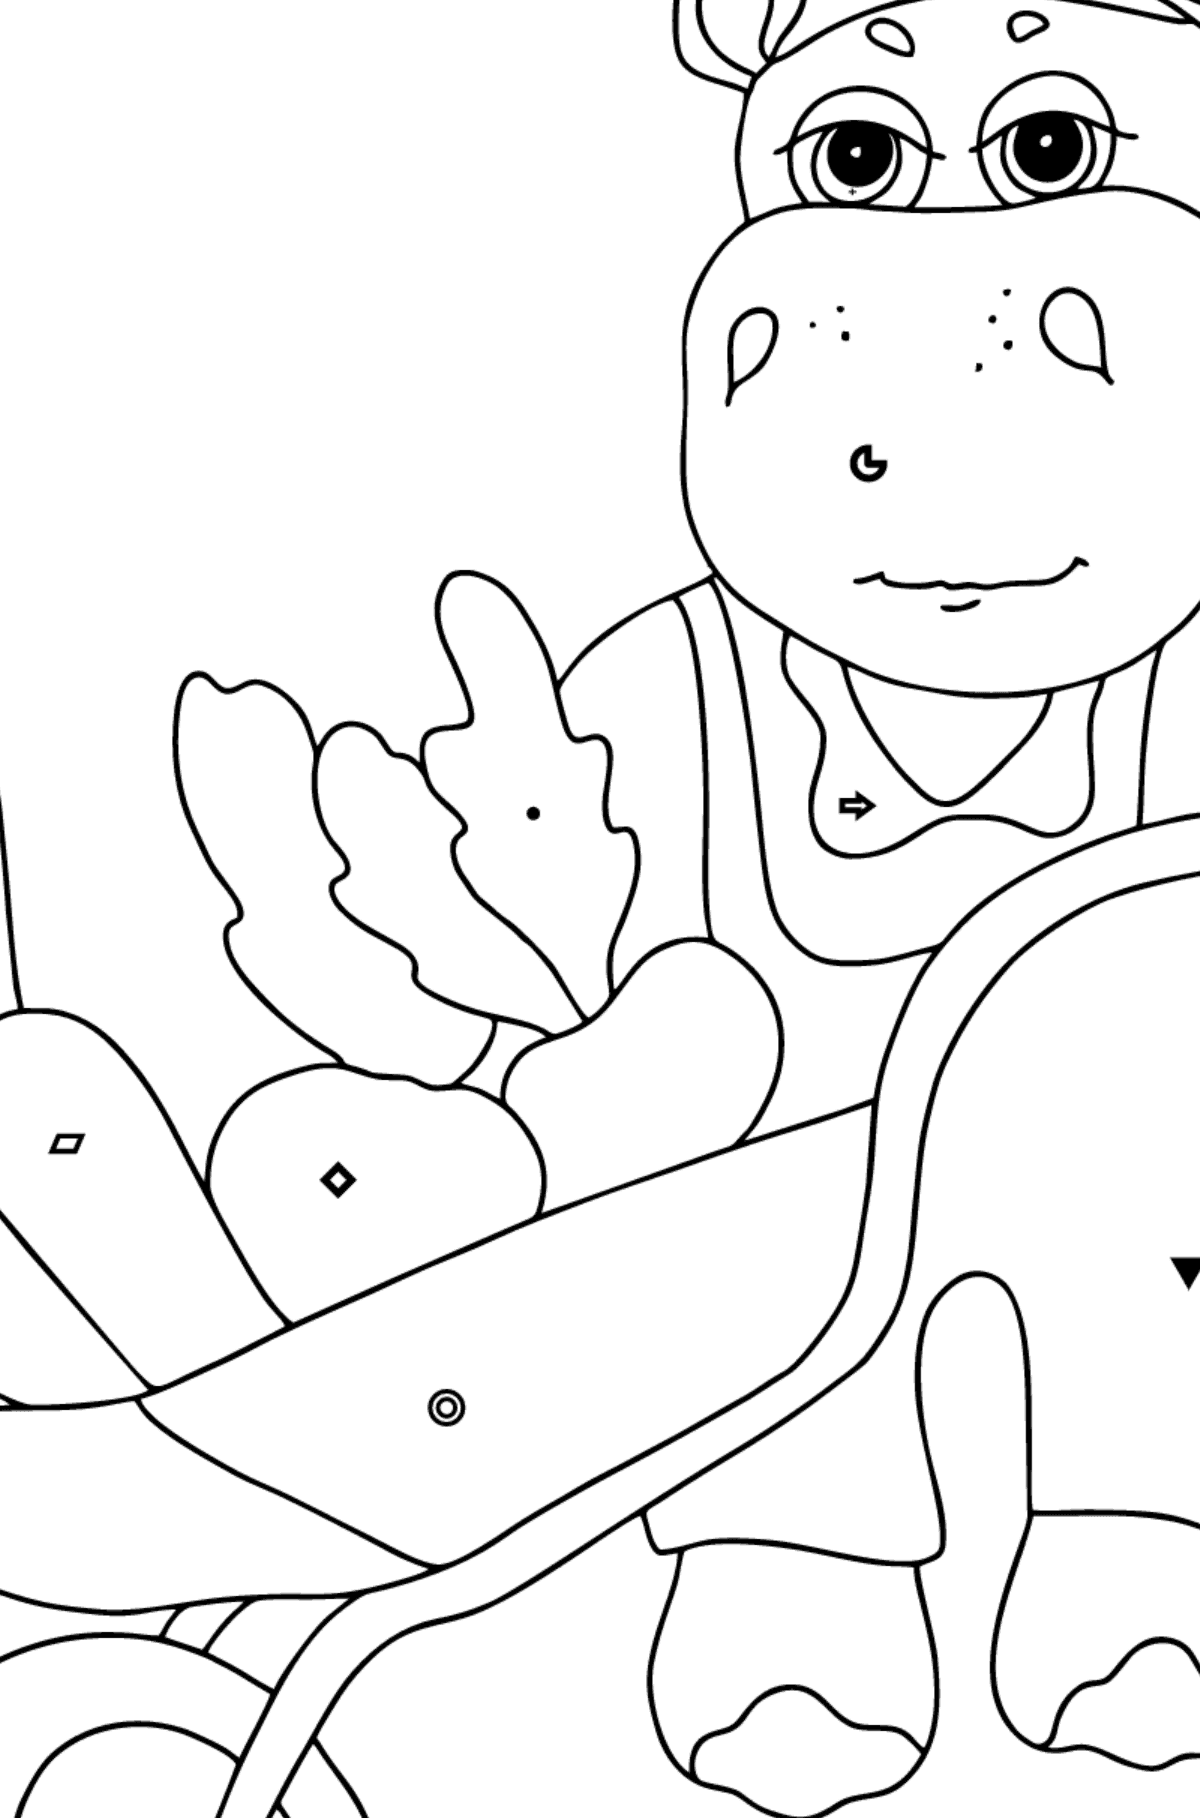 Coloring Page - A Hippo with a Cart for Children  - Color by Symbols and Geometric Shapes